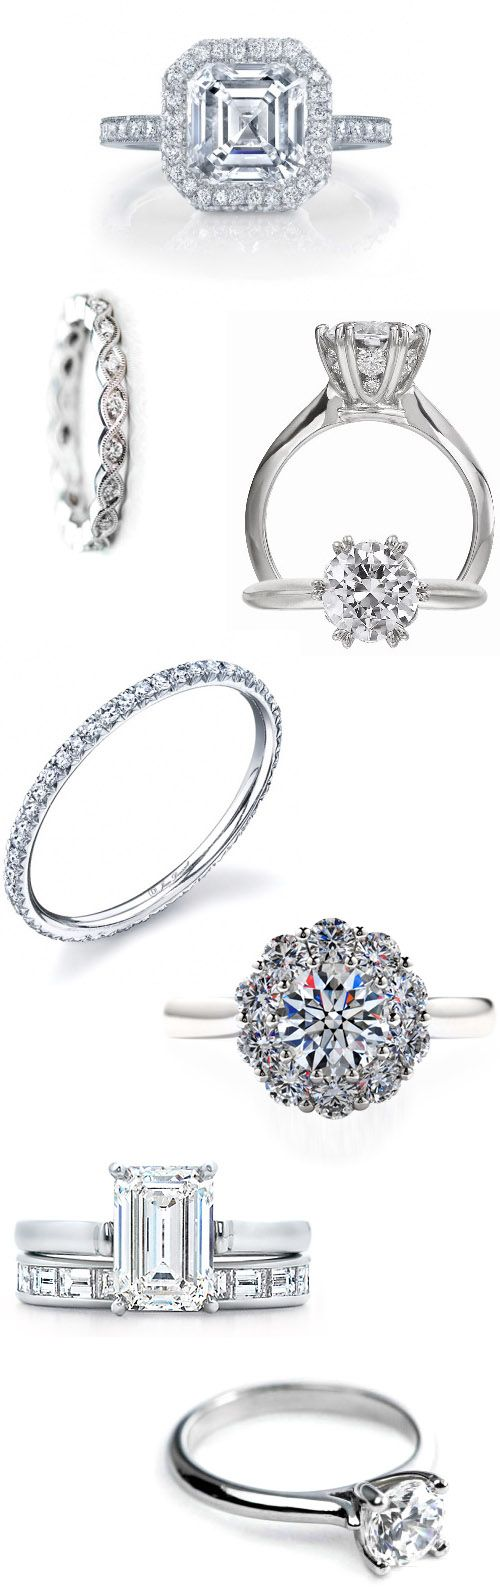 Simply beautiful, these classic diamond rings will stand the test of time! Rings: Dousset Diamonds, T. Anthony Jewelers, EE Robbins, Fox's Gem Shop and Tiffany & Co.